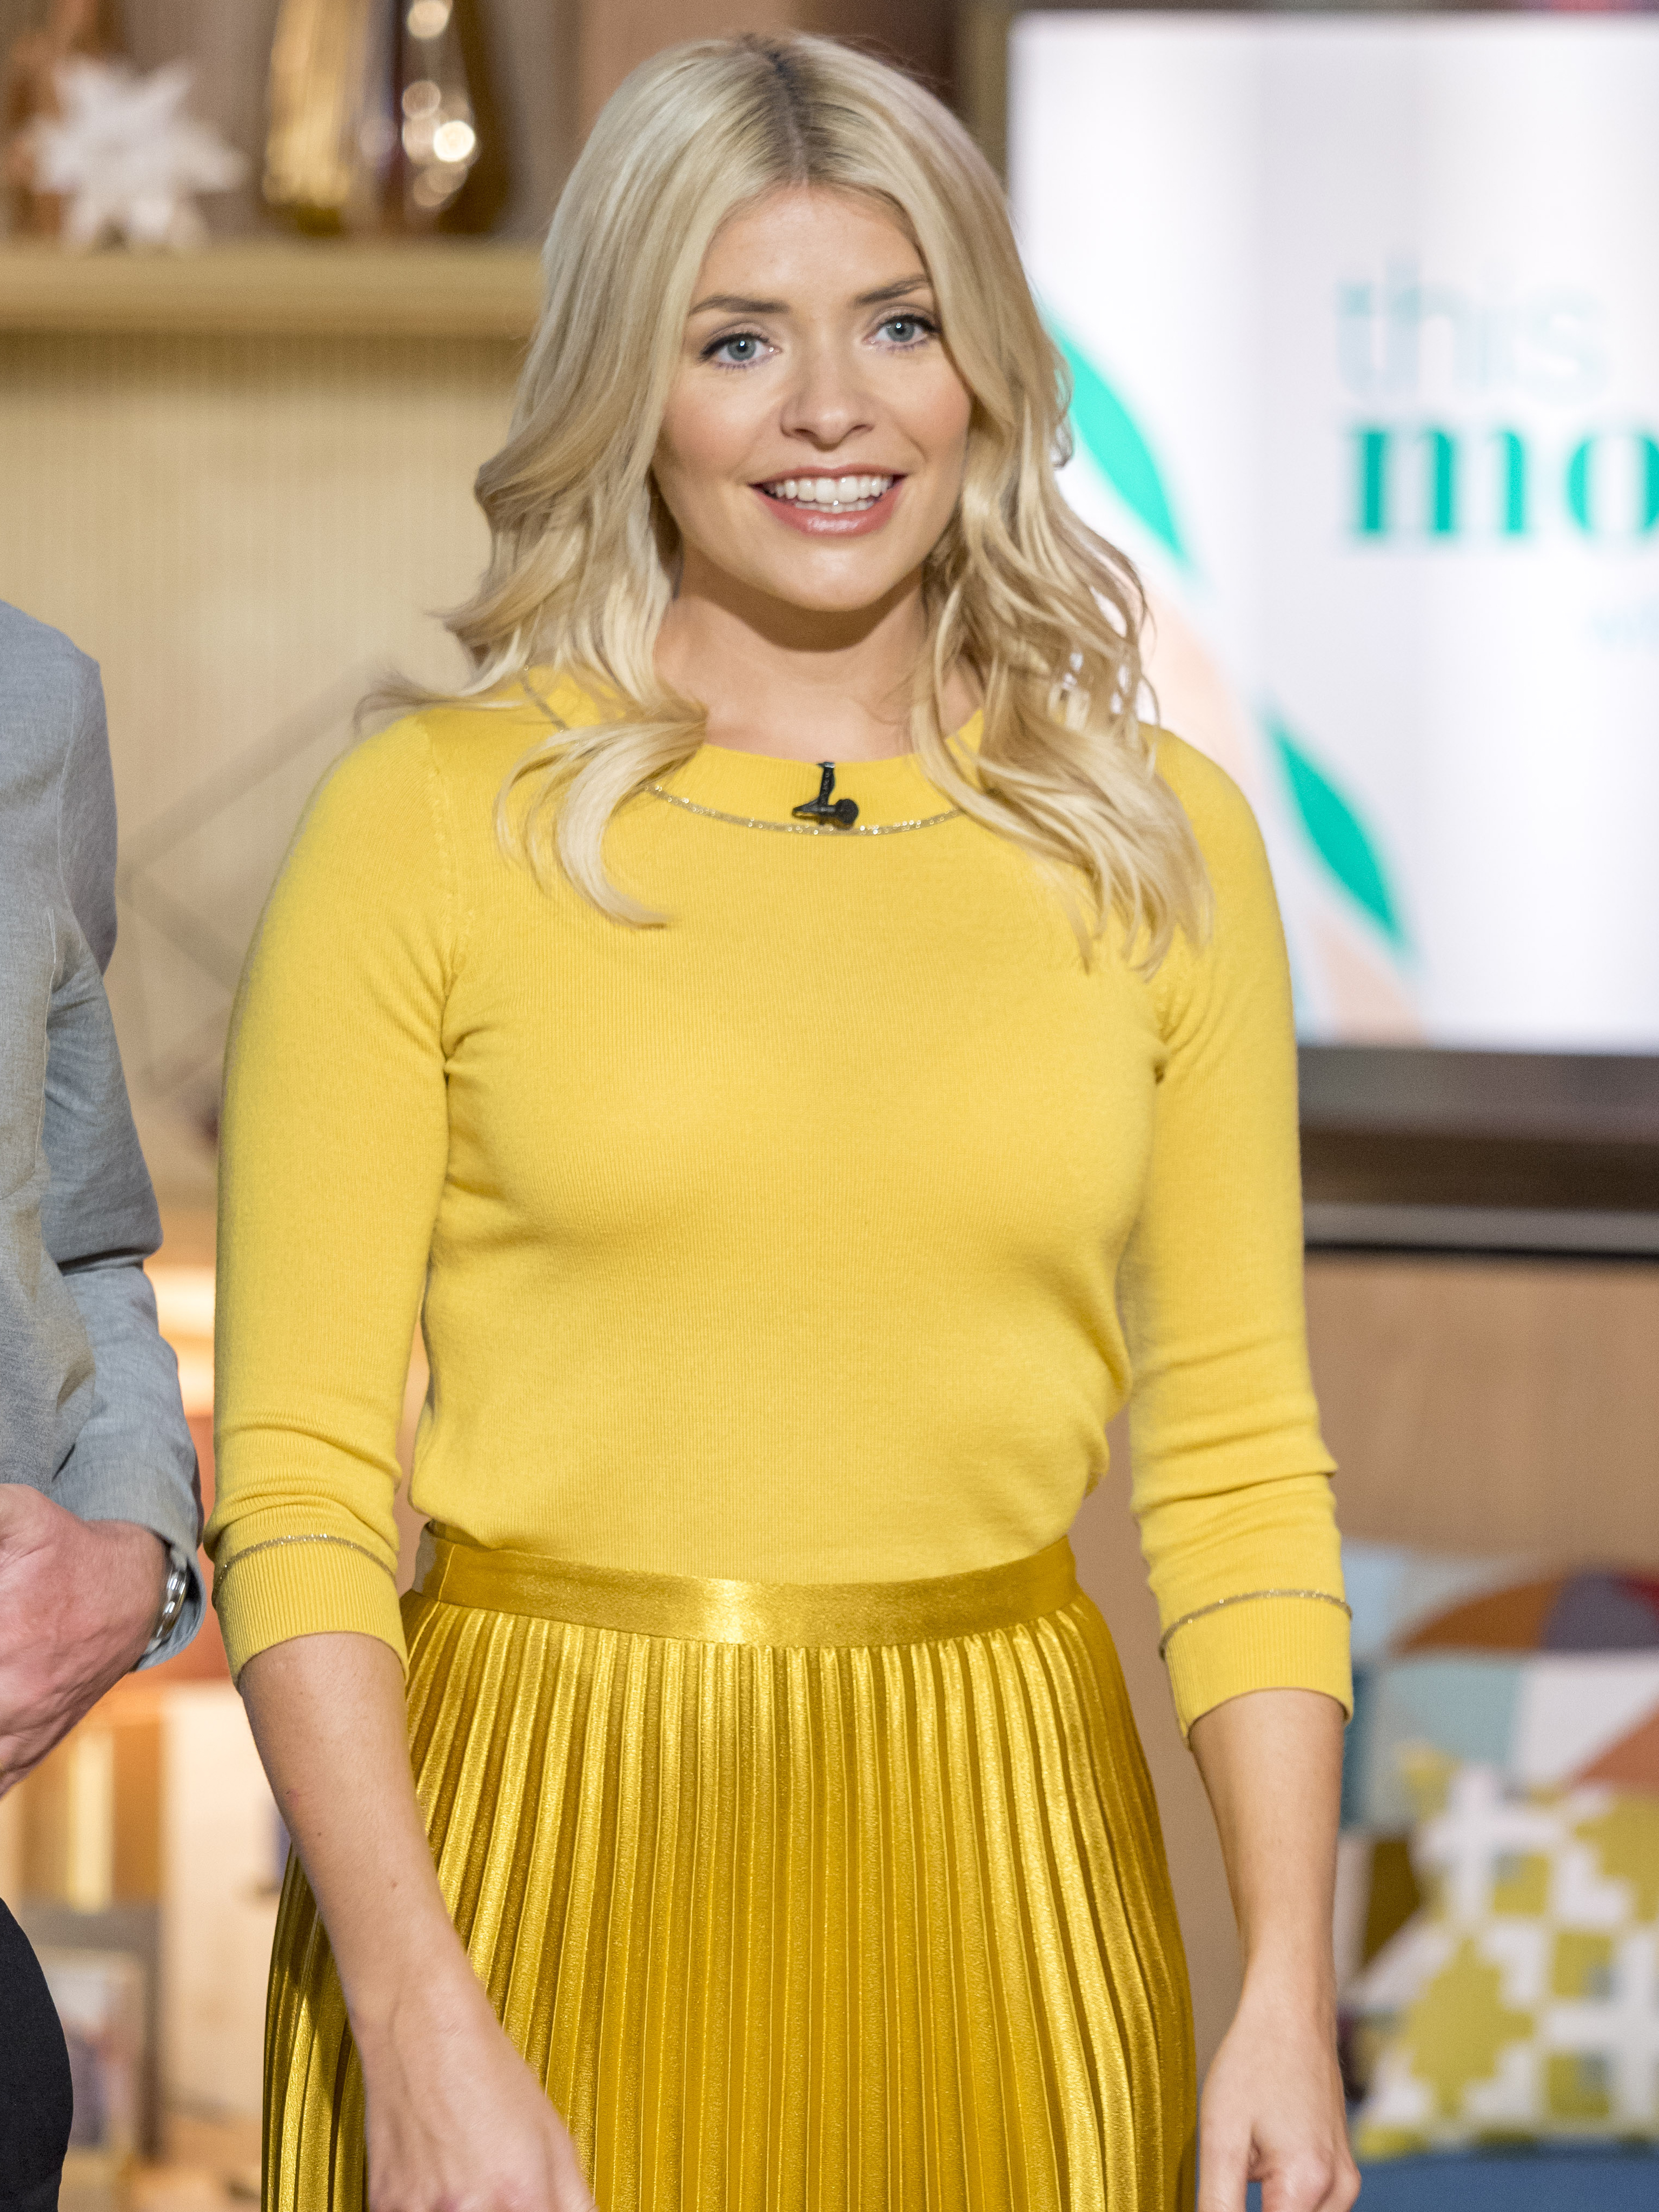 Holly Willoughby Nudes regarding holly willoughby shows off her gorgeous legs in marilyn monroe moment